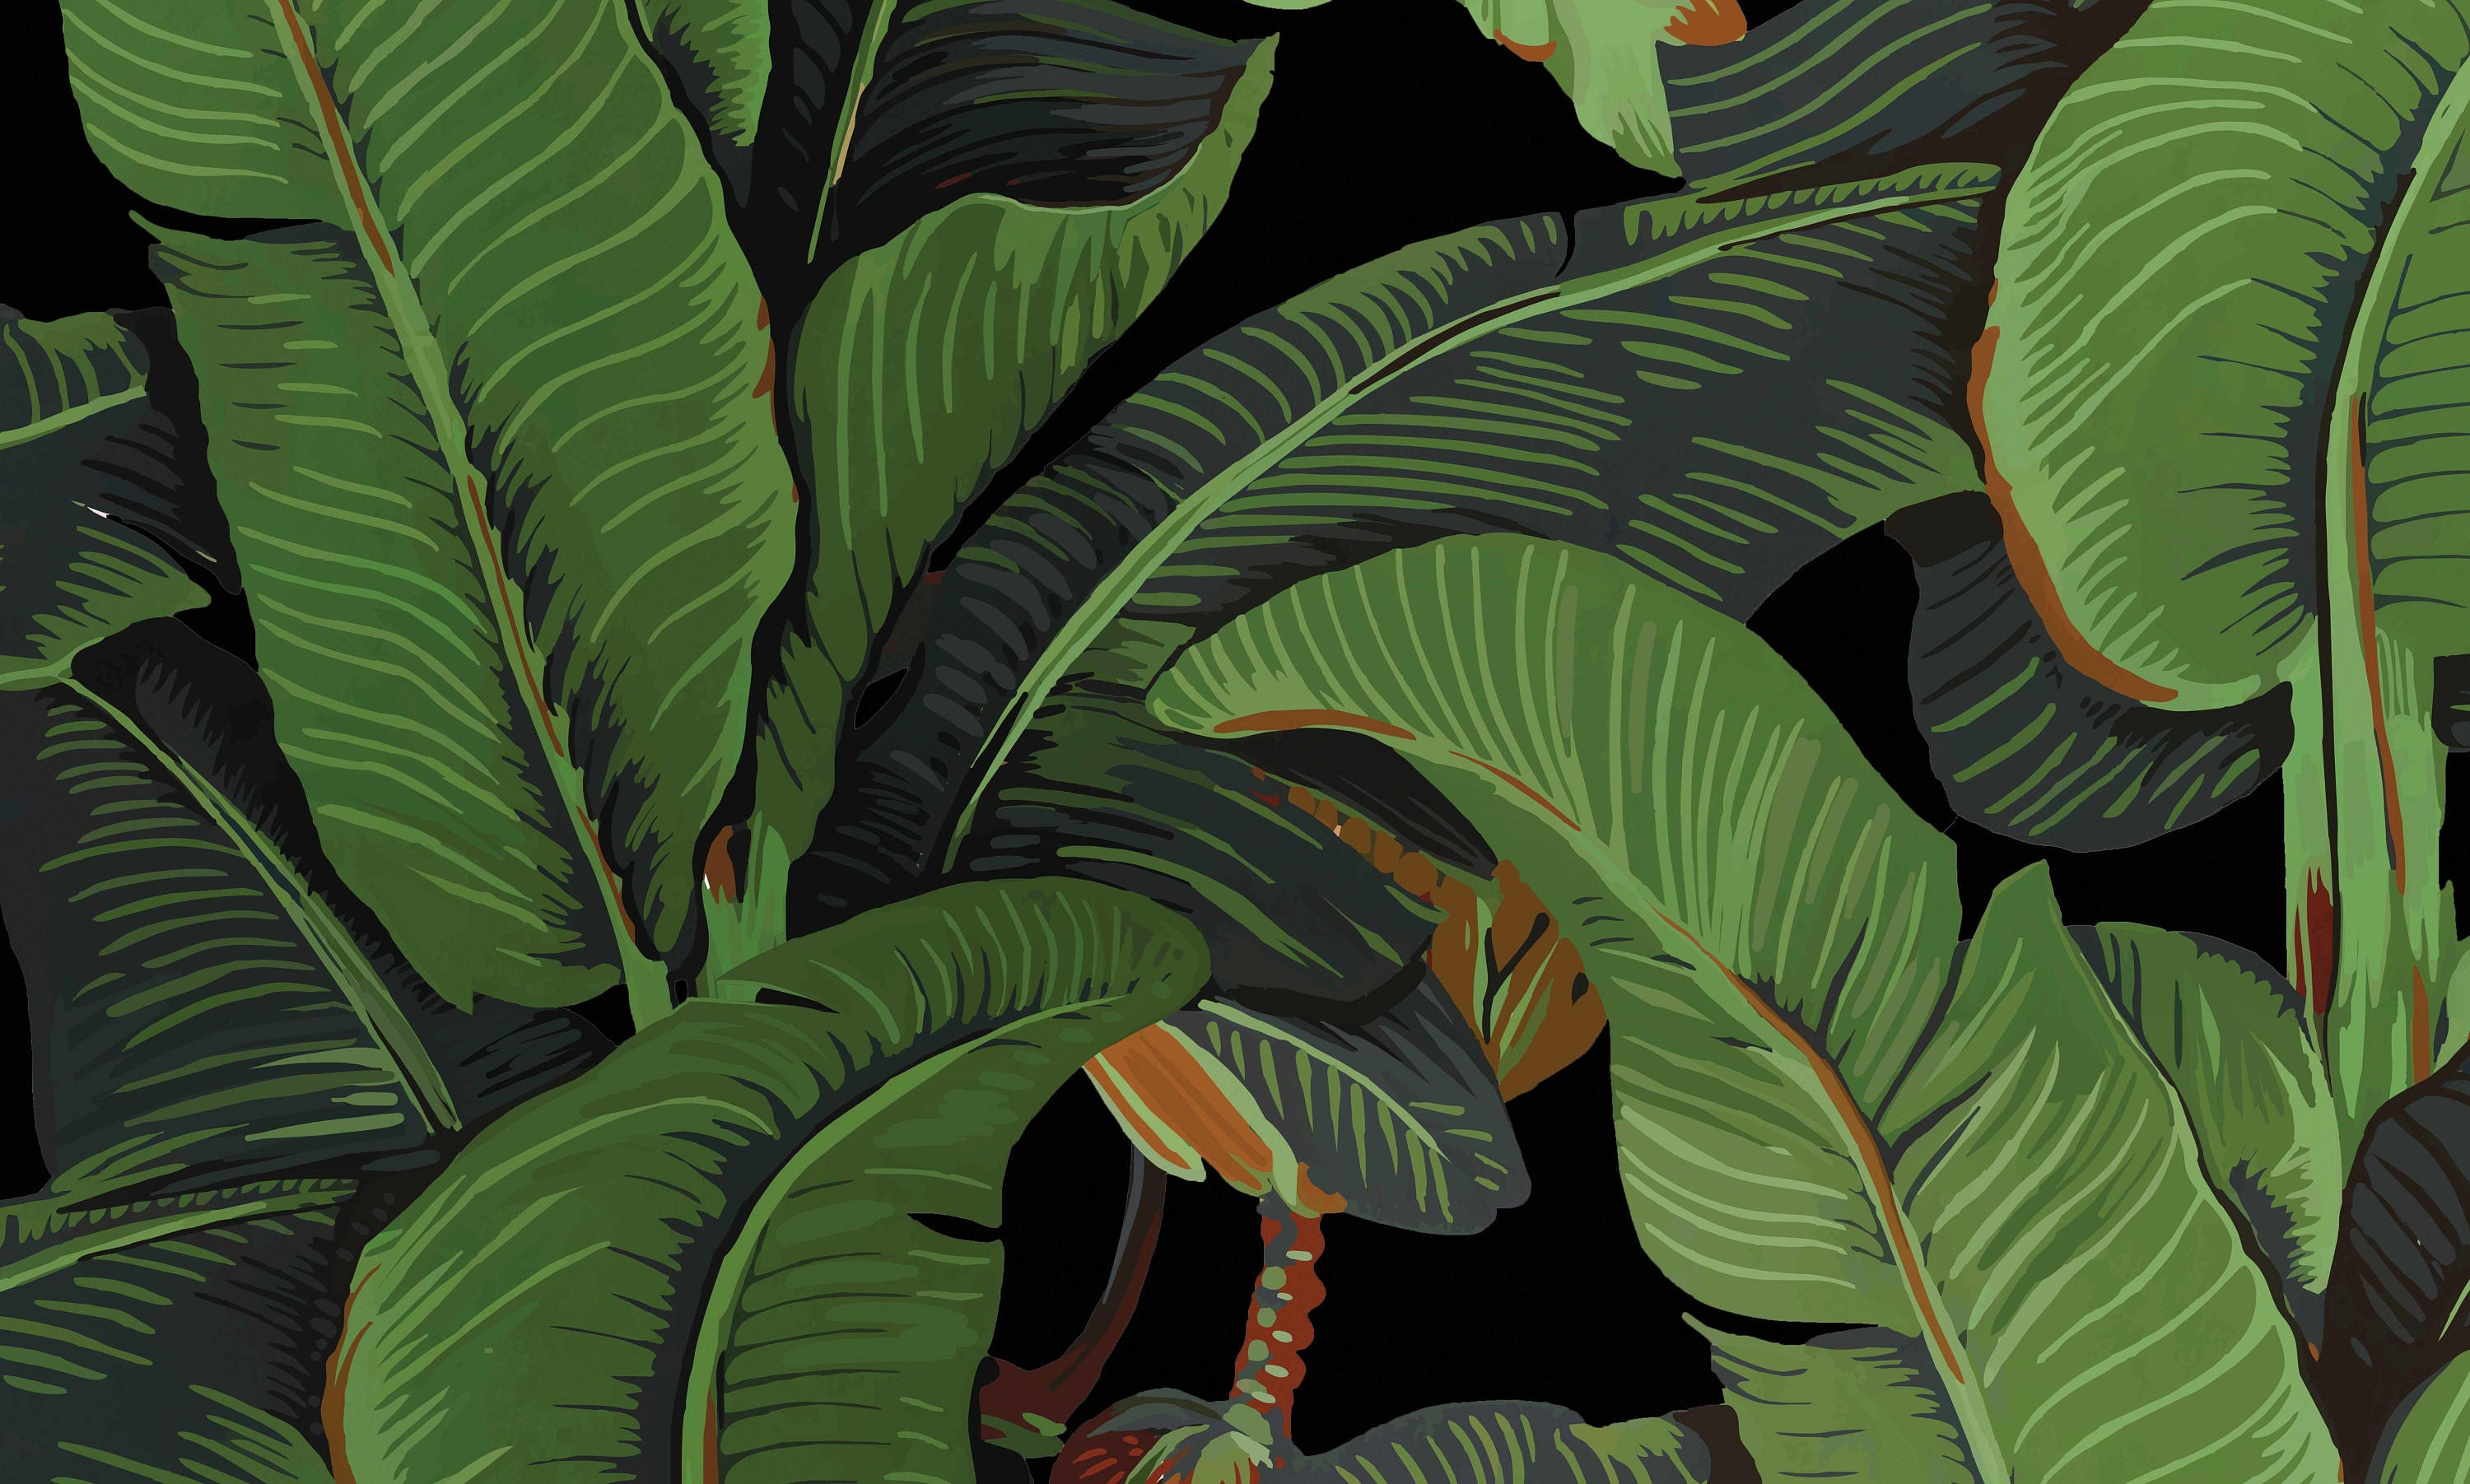 Black Banano Leaf Wallpaper Banana Leaves Wall Decor Tropical